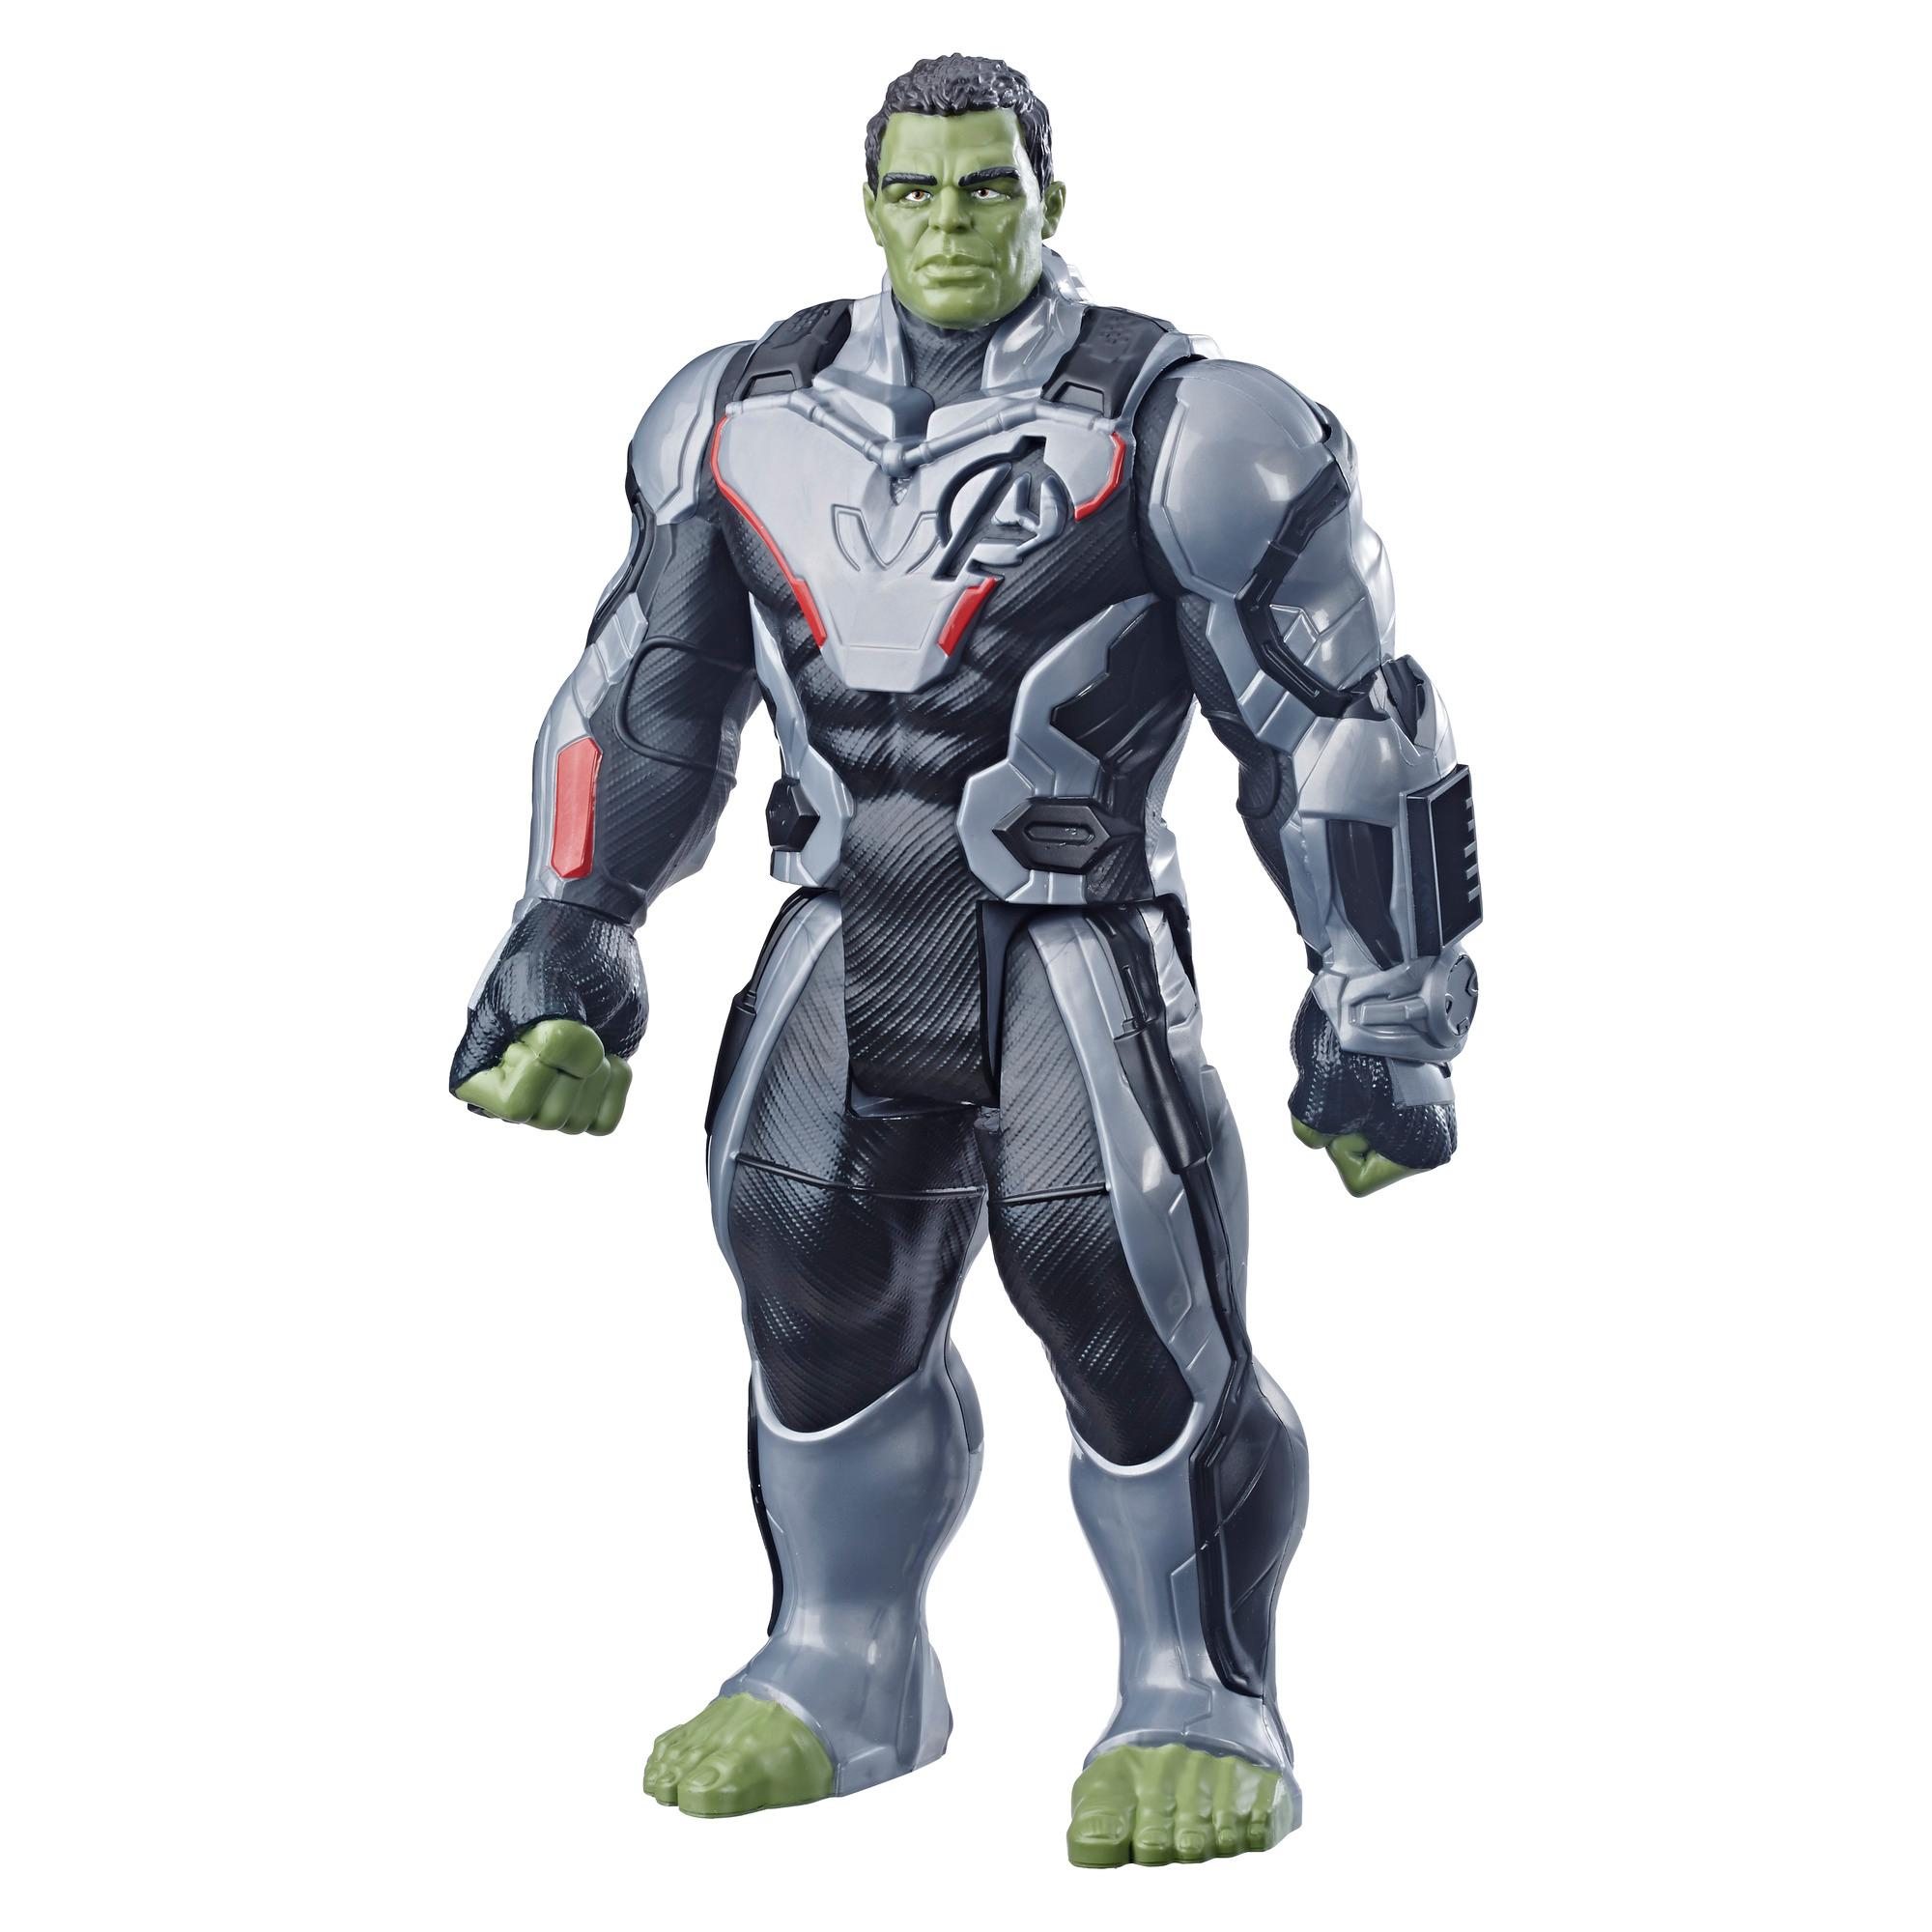 Marvel Avengers: Endgame - Titan Hero Power FX Hulk